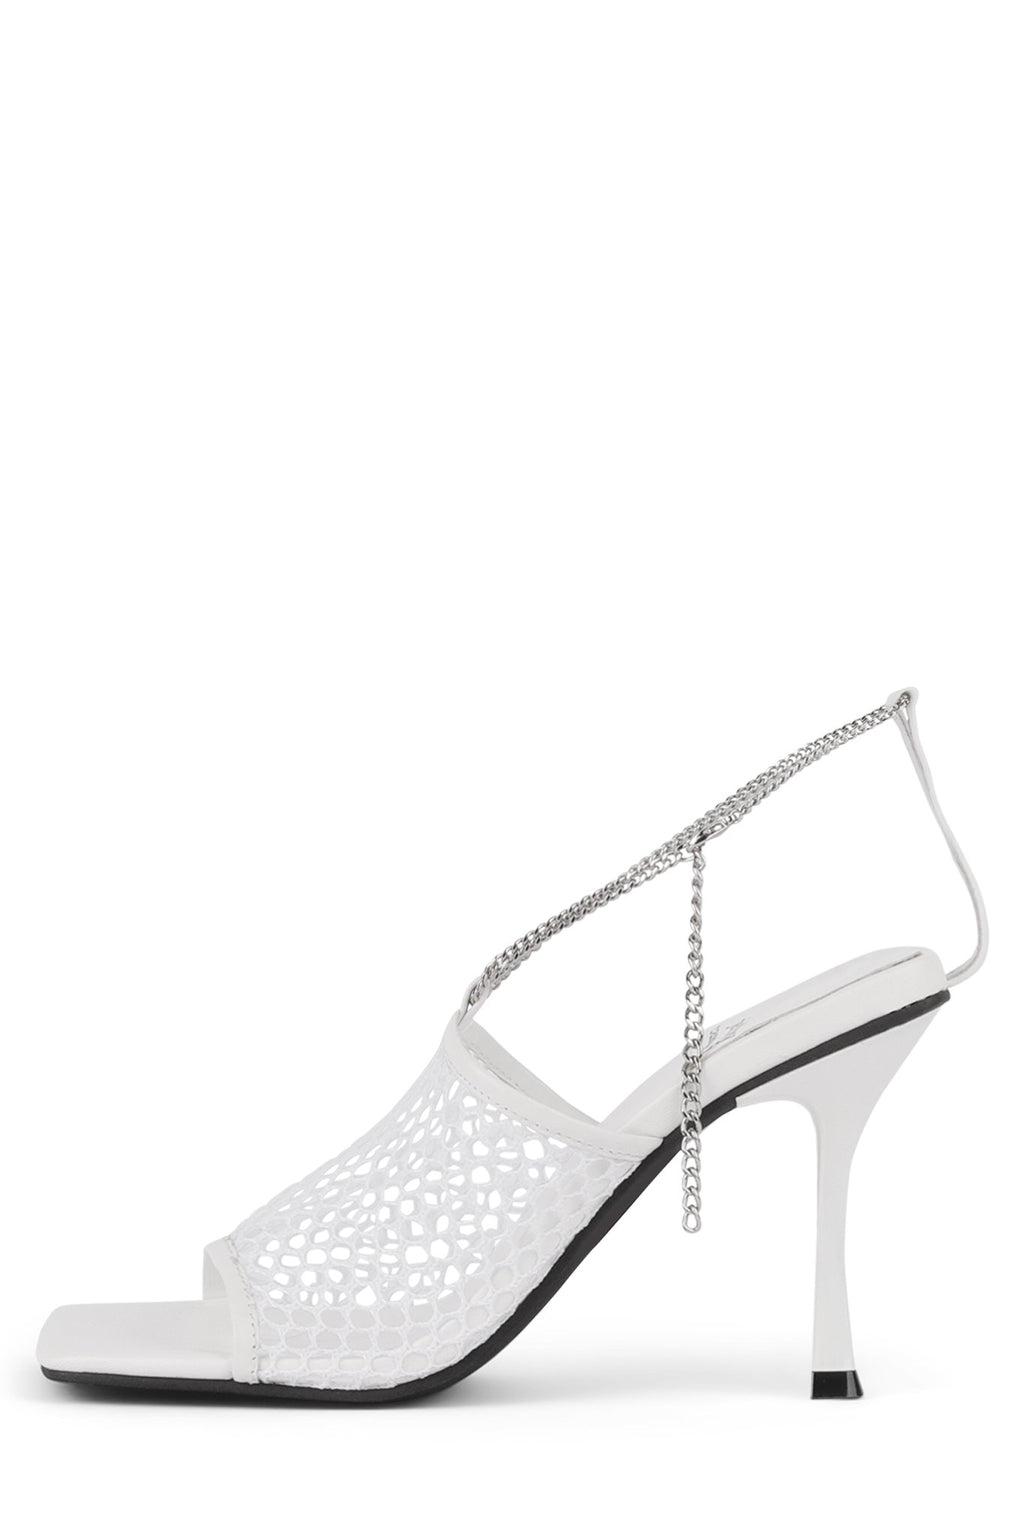 AMELINE-MS Heeled Sandal Jeffrey Campbell White 6